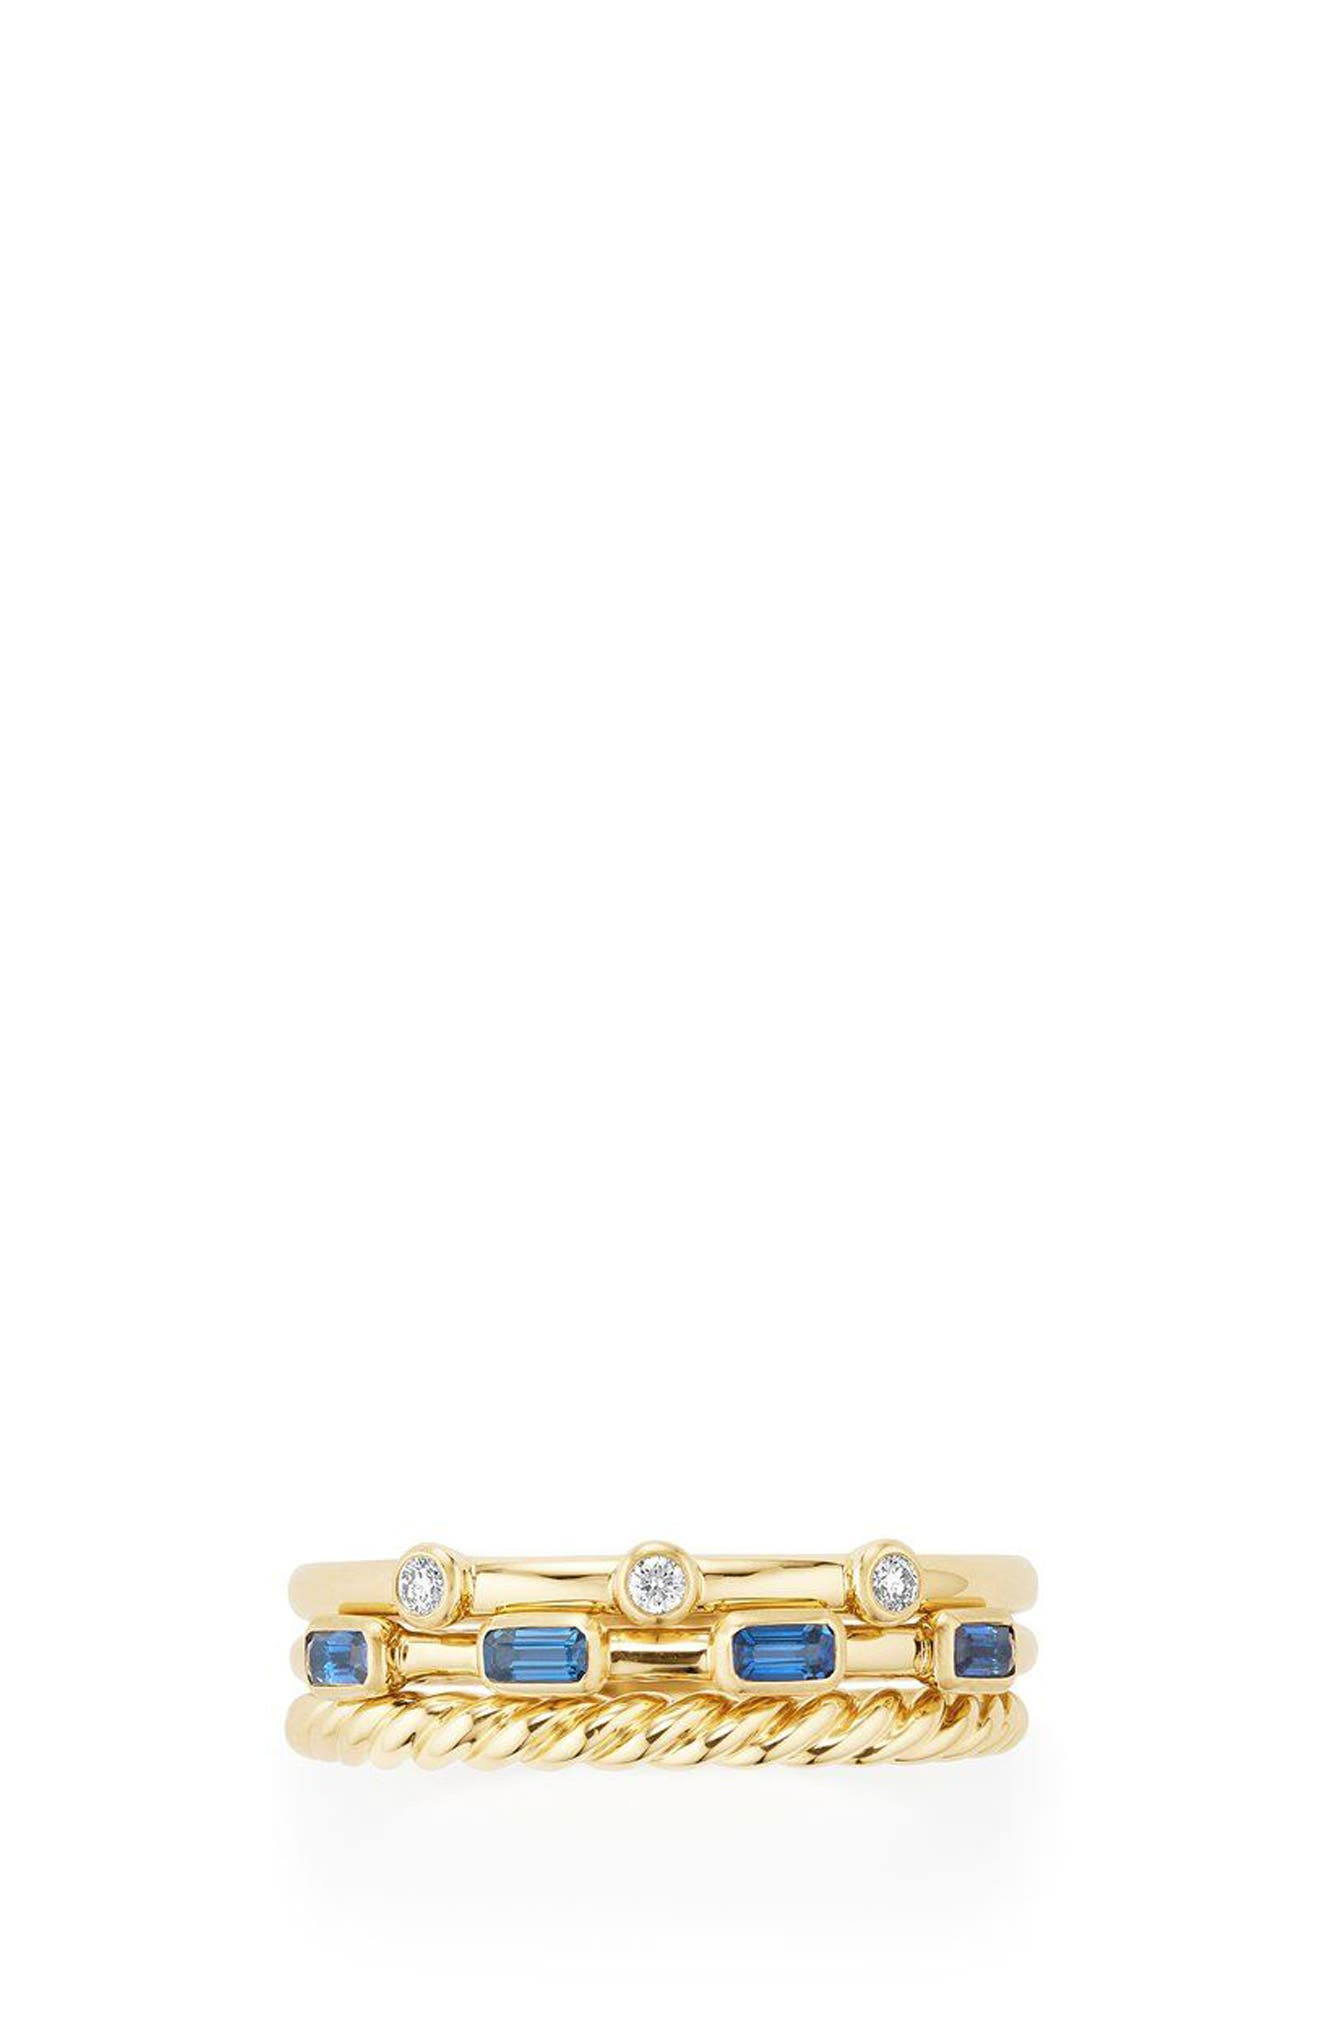 DAVID YURMAN,                             Novella 3-Row Ring with Diamonds,                             Alternate thumbnail 3, color,                             GOLD/ DIAMOND/ BLUE SAPPHIRE